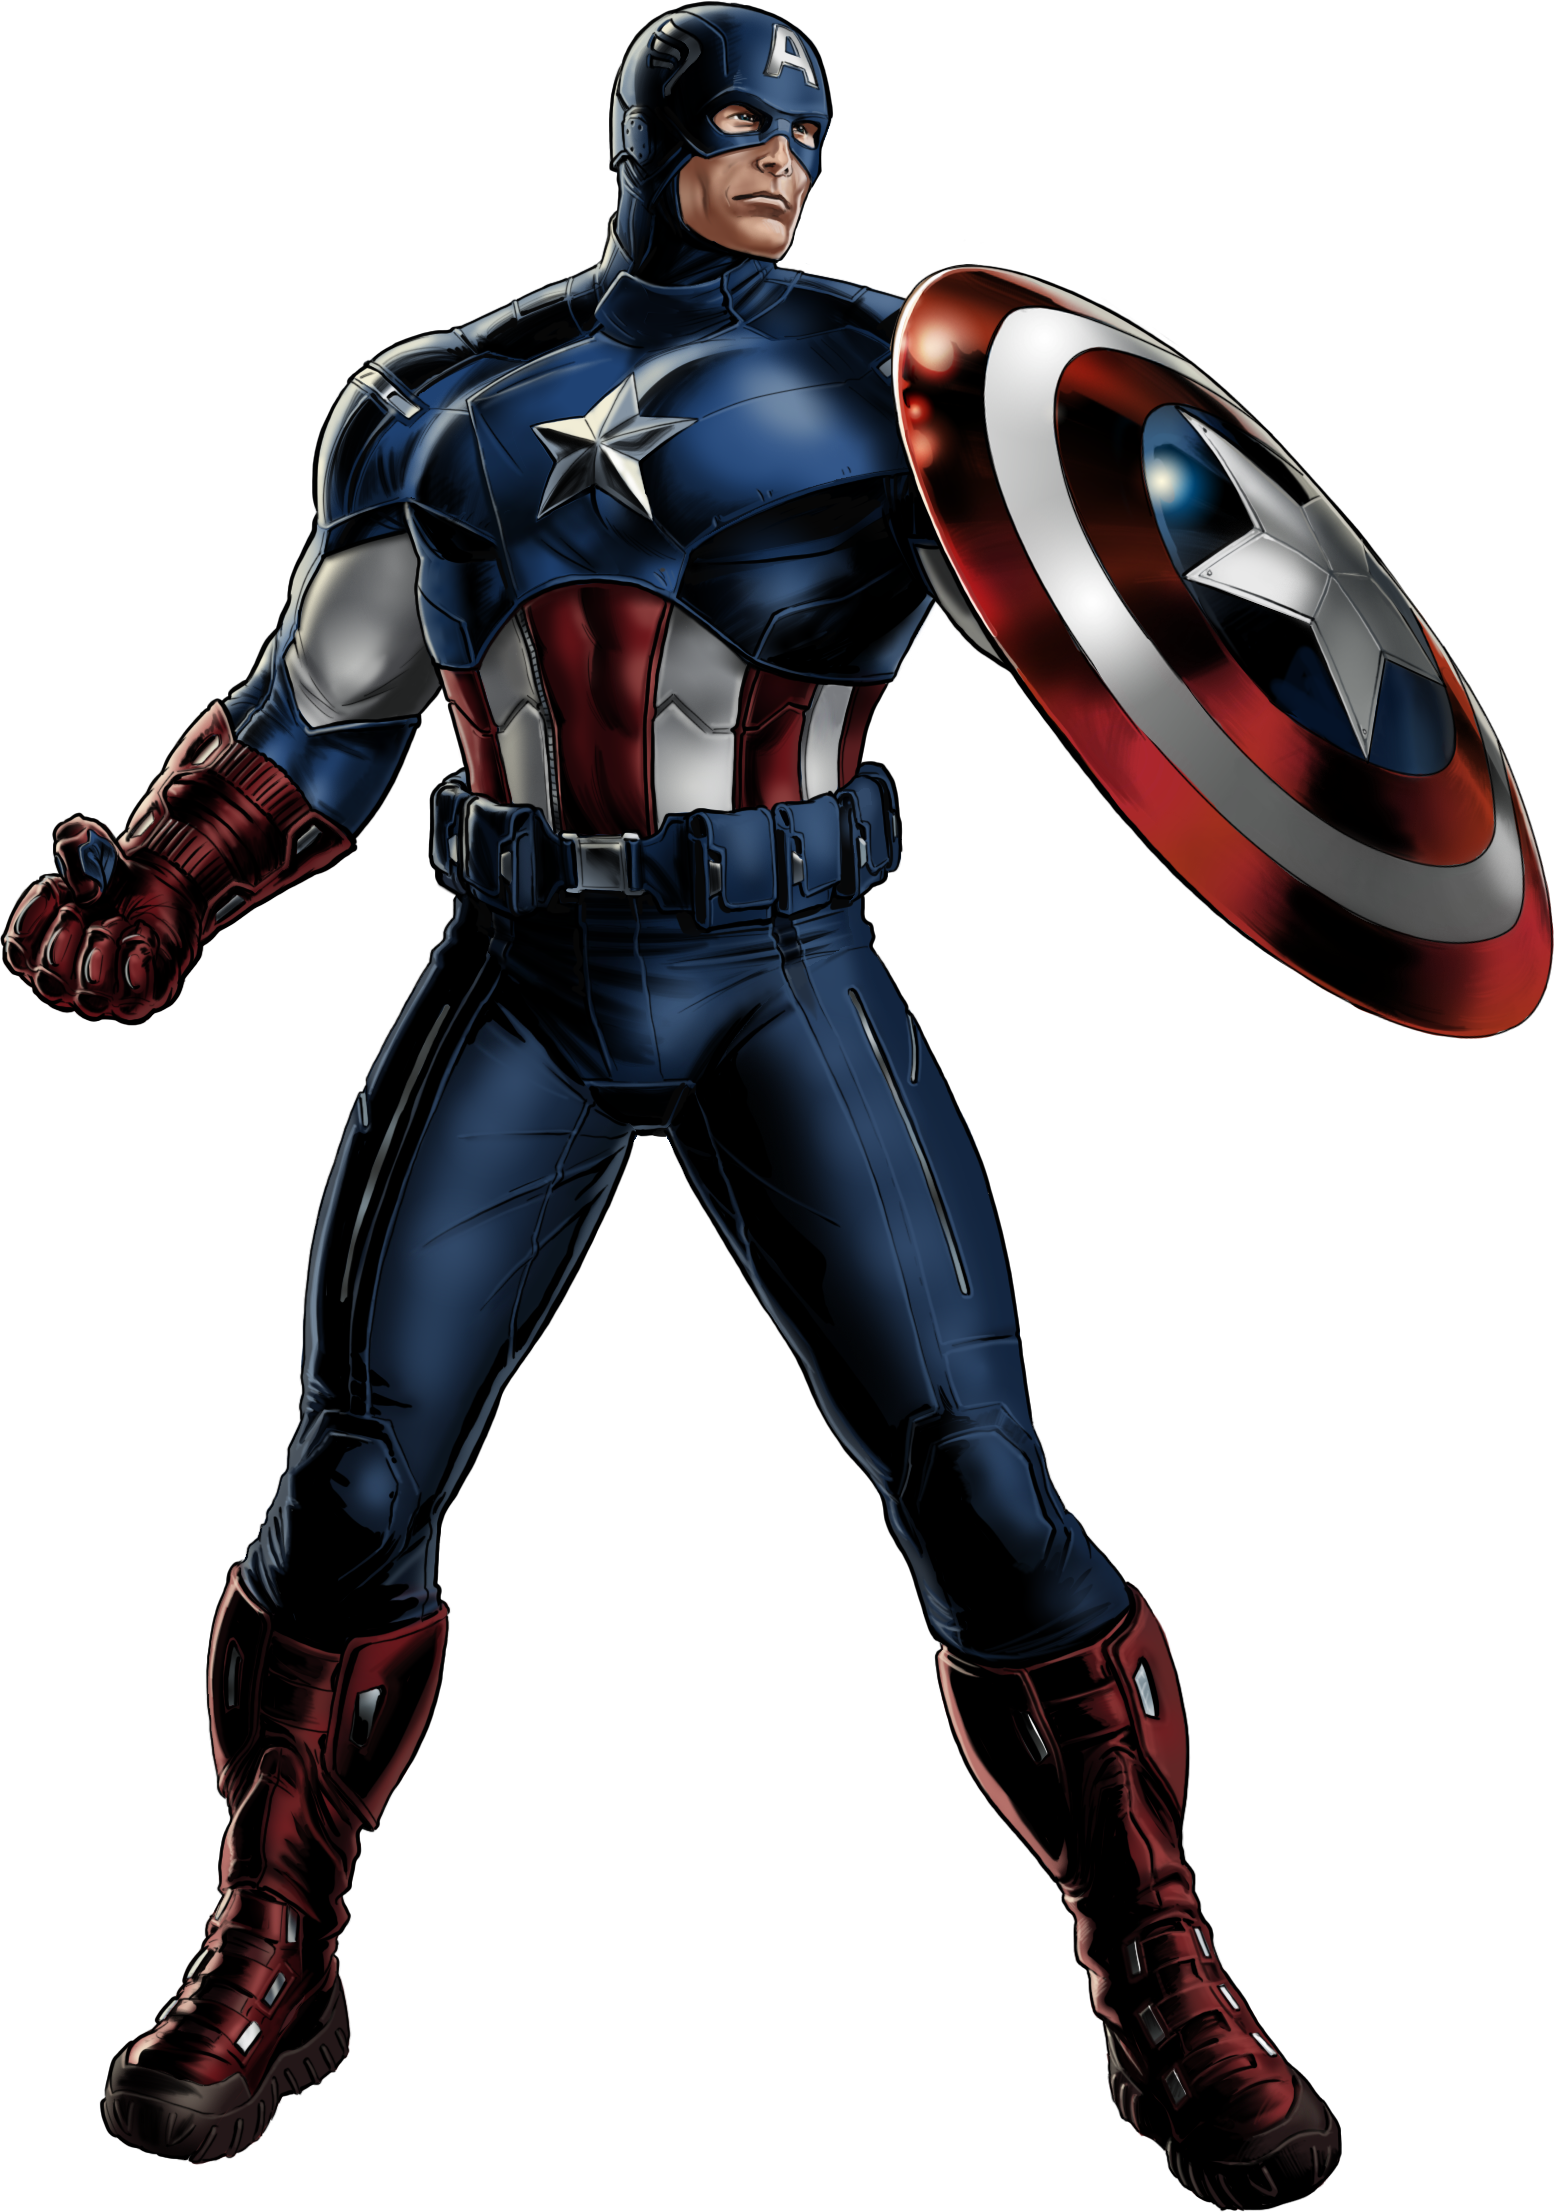 Hd Marvel Png - Avengers HD PNG Transparent Avengers HD. #650206 - PNG Images - PNGio